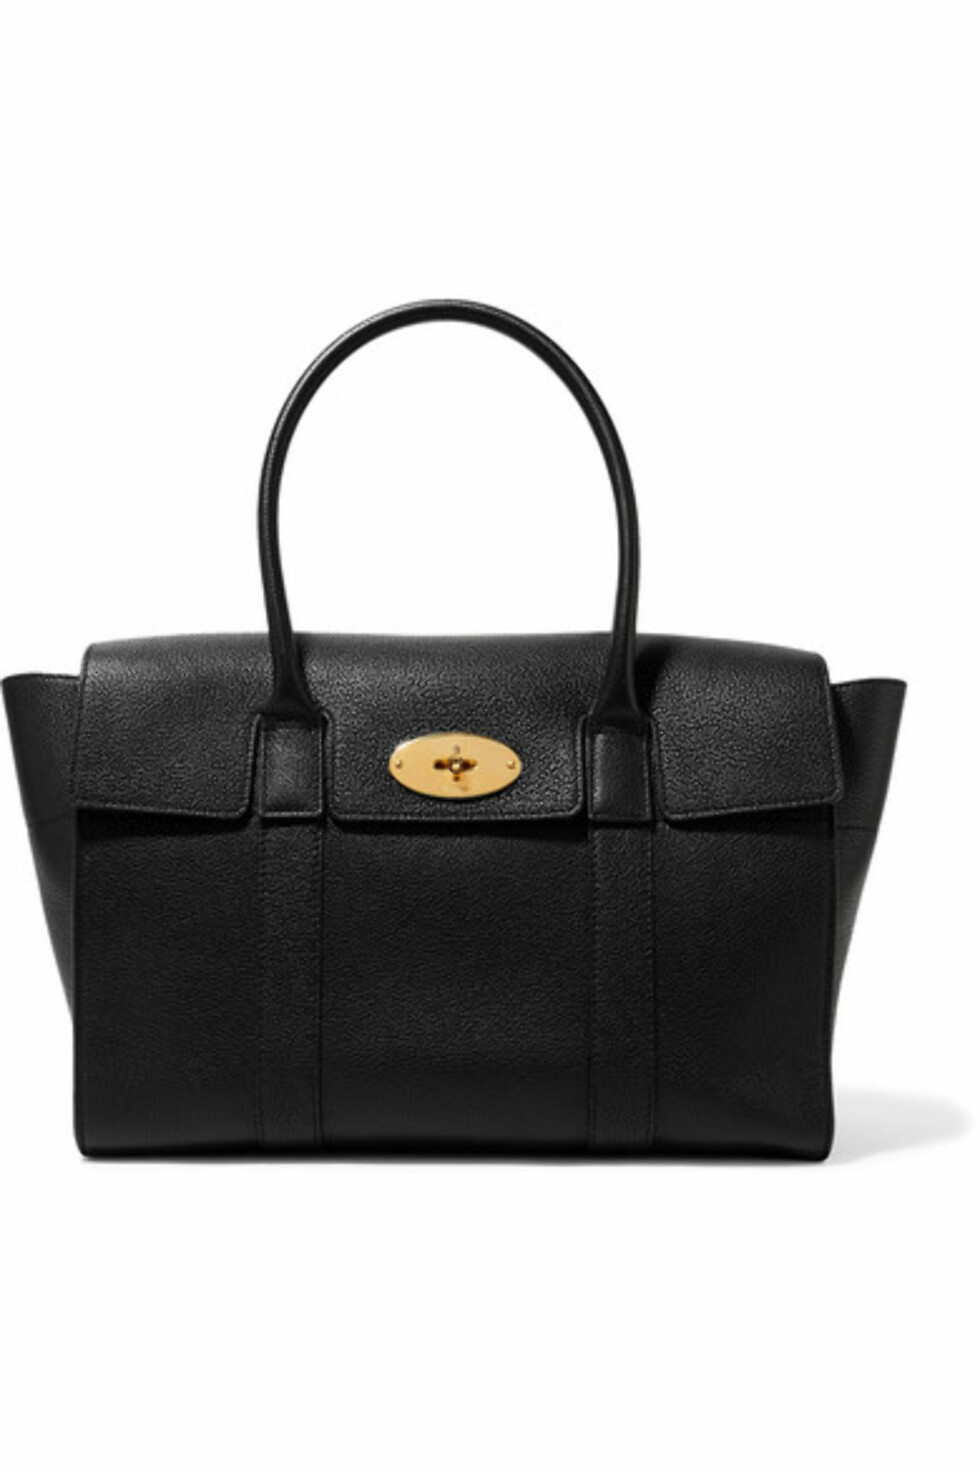 Veske fra Mulberry  9000,-  https://www.net-a-porter.com/no/en/product/915299/mulberry/the-bayswater-textured-leather-tote